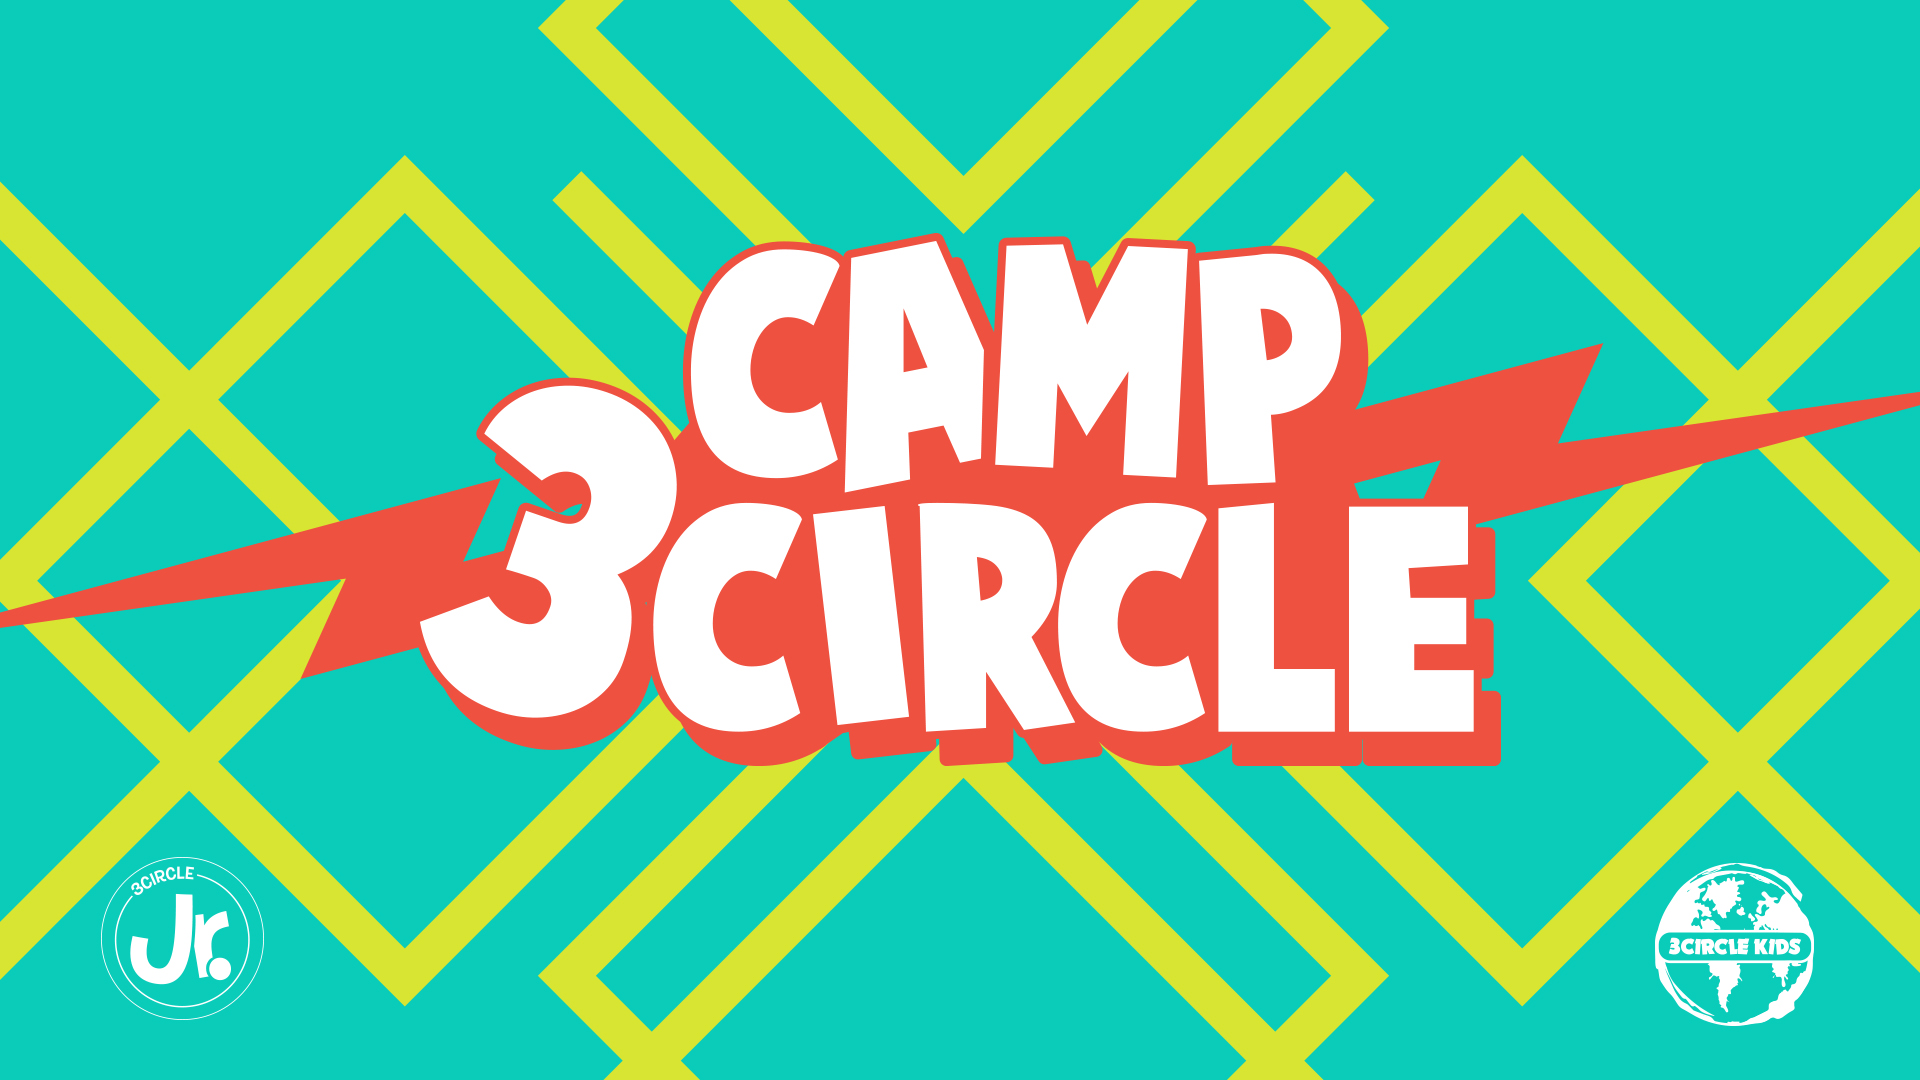 Camp 3Circle - Thomasville